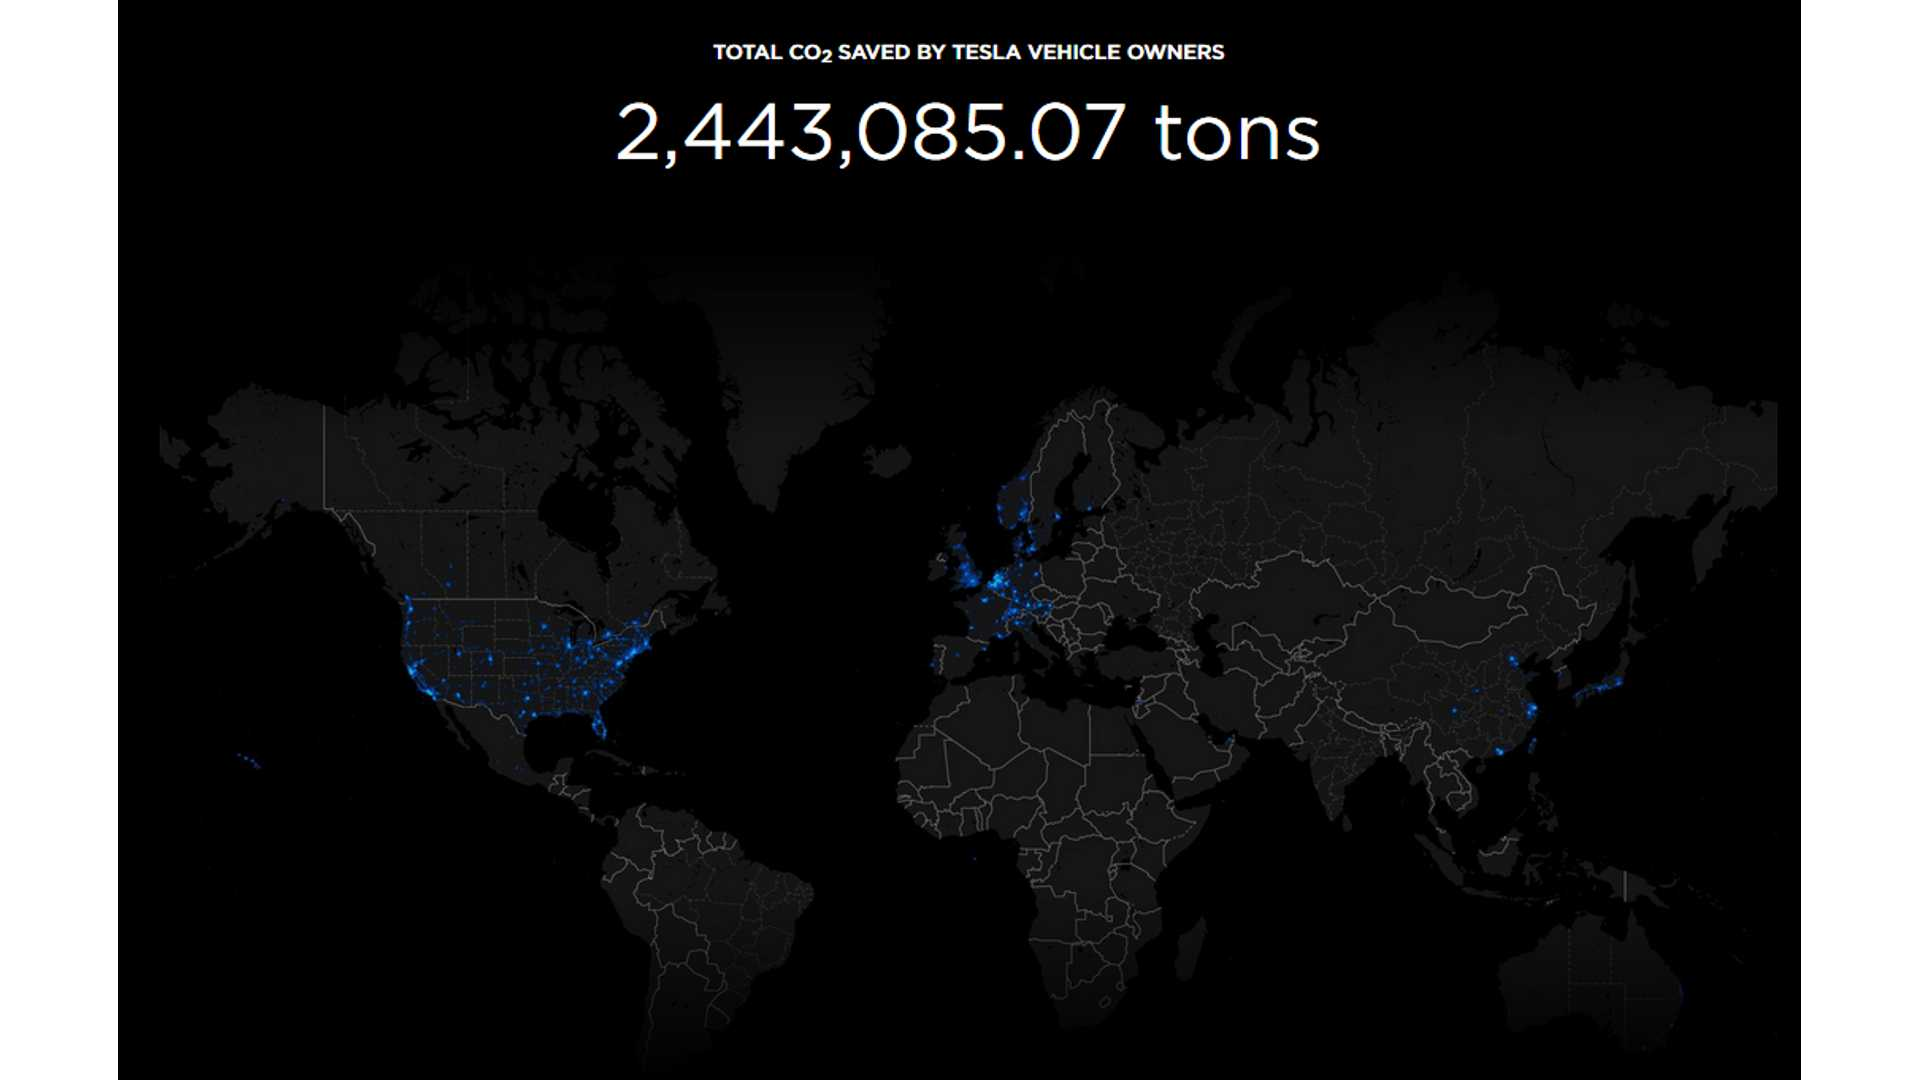 Check Out Tesla's Carbon Impact Map: Top Cities, Countries Tallied